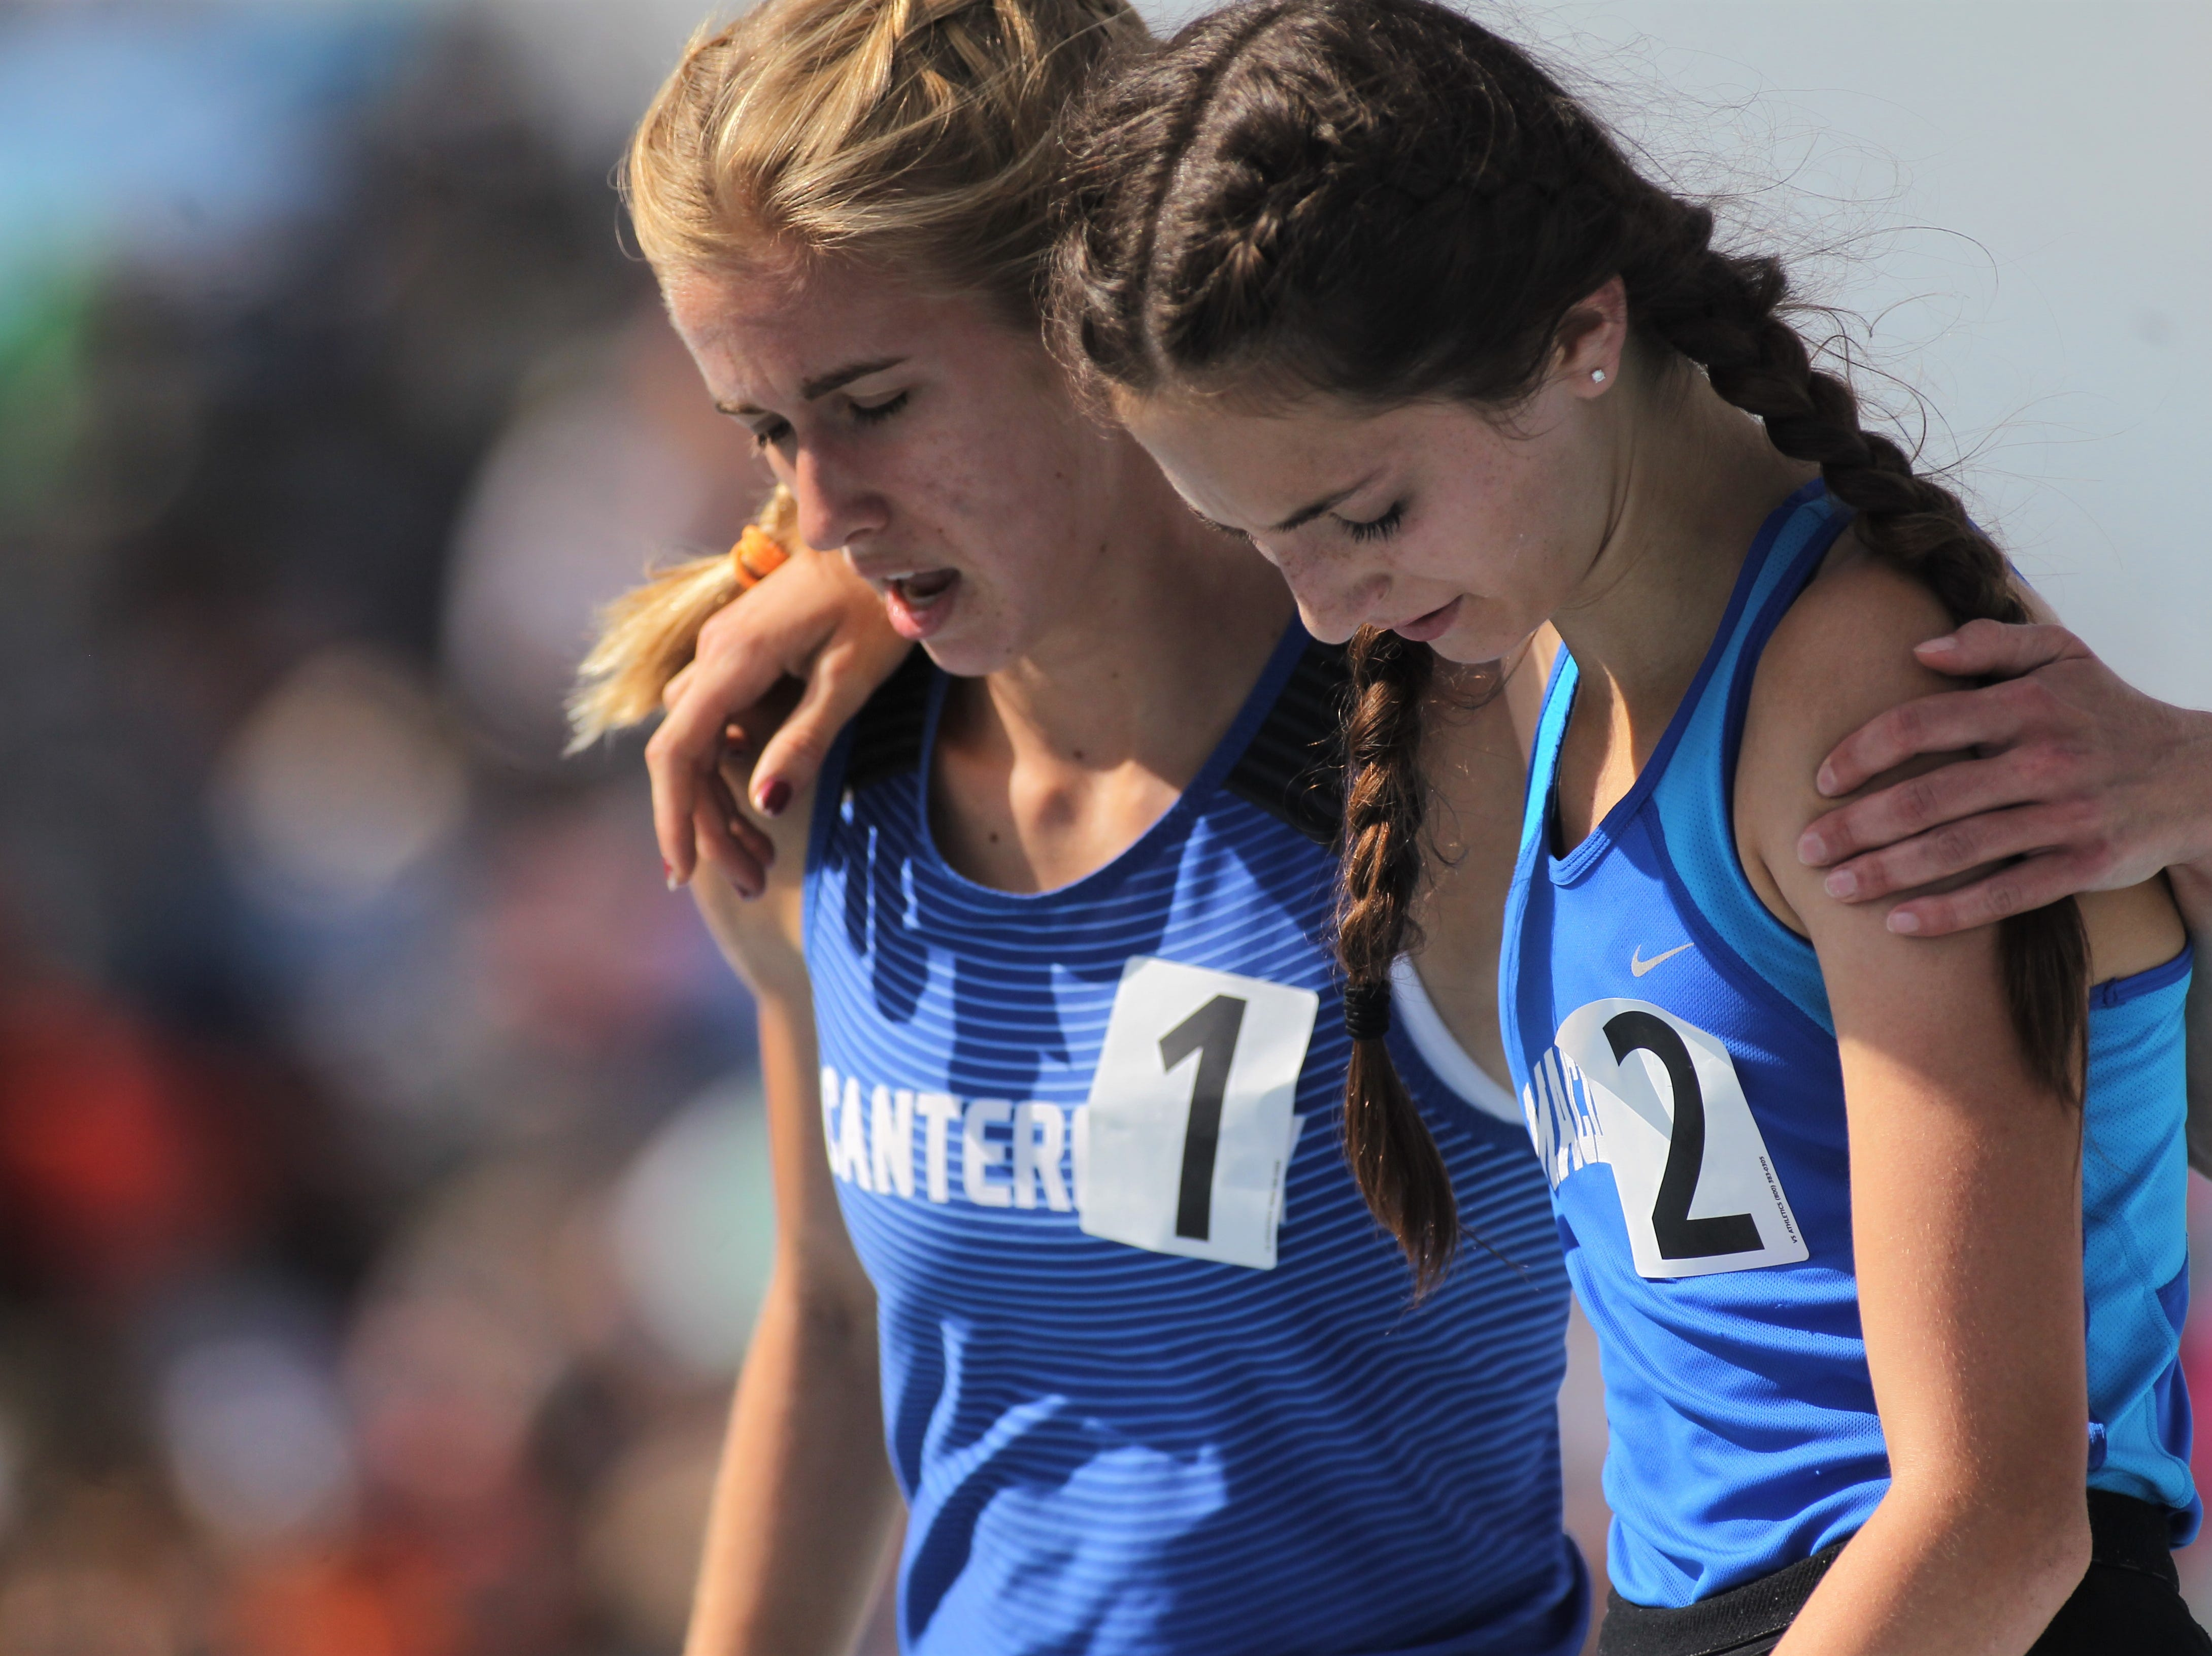 Canterbury sophomore Jessica Edwards and Maclay eighth-grader Ella Porcher share a hug after finishing 1-2 in the Class 1A 1600m run during the FHSAA Track and Field State Championships at UNF's Hodges Stadium in Jacksonville on May 4, 2019.